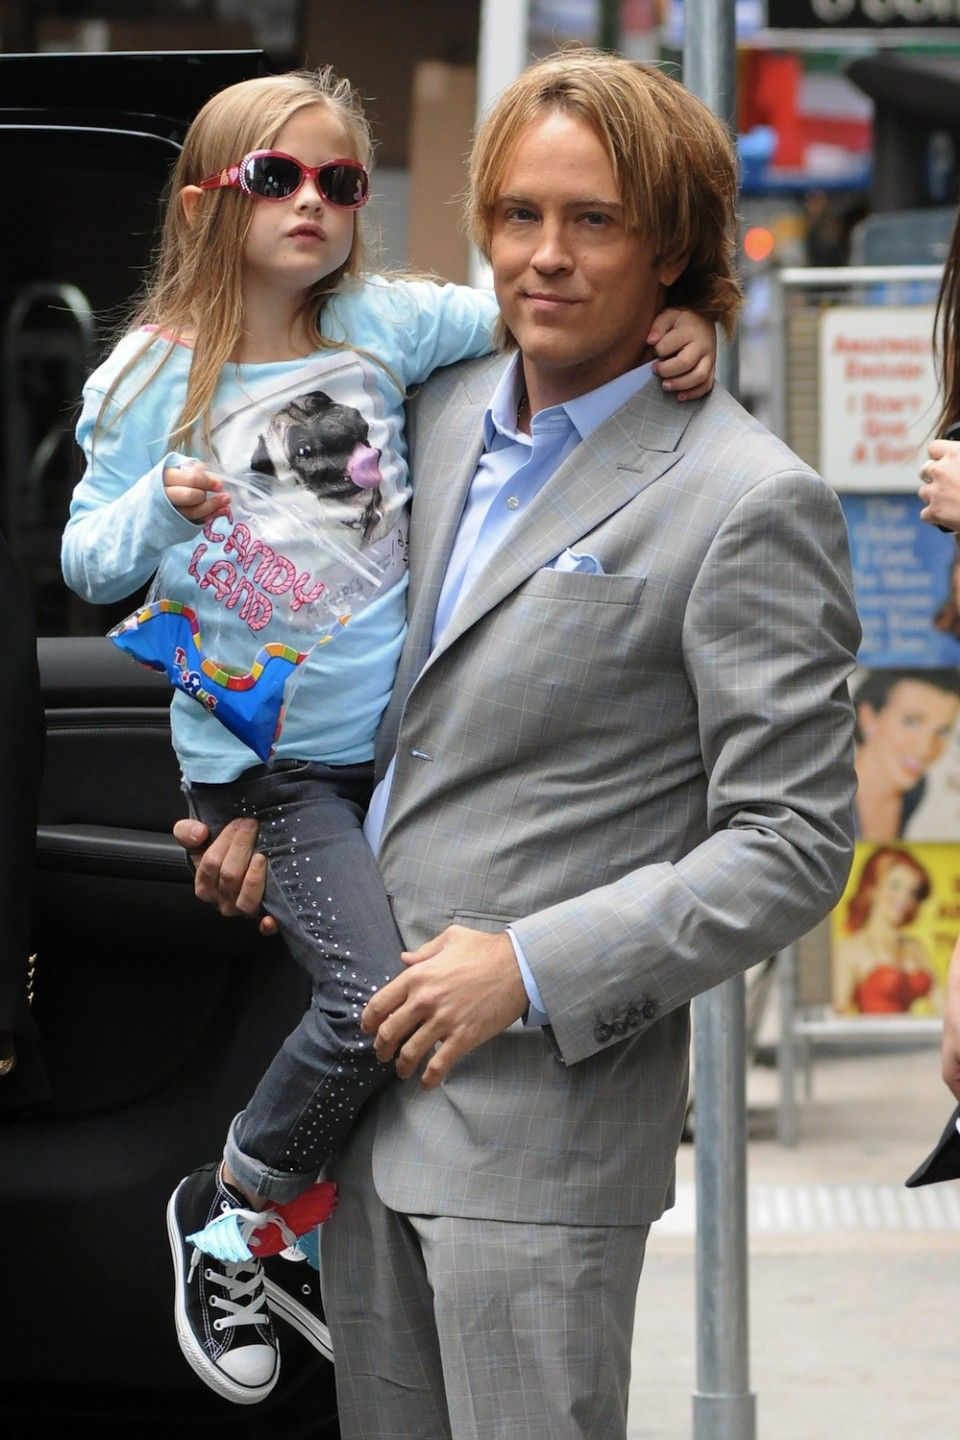 images Larry Birkhead Anna Nicole Smith's Tot Arrive In USA